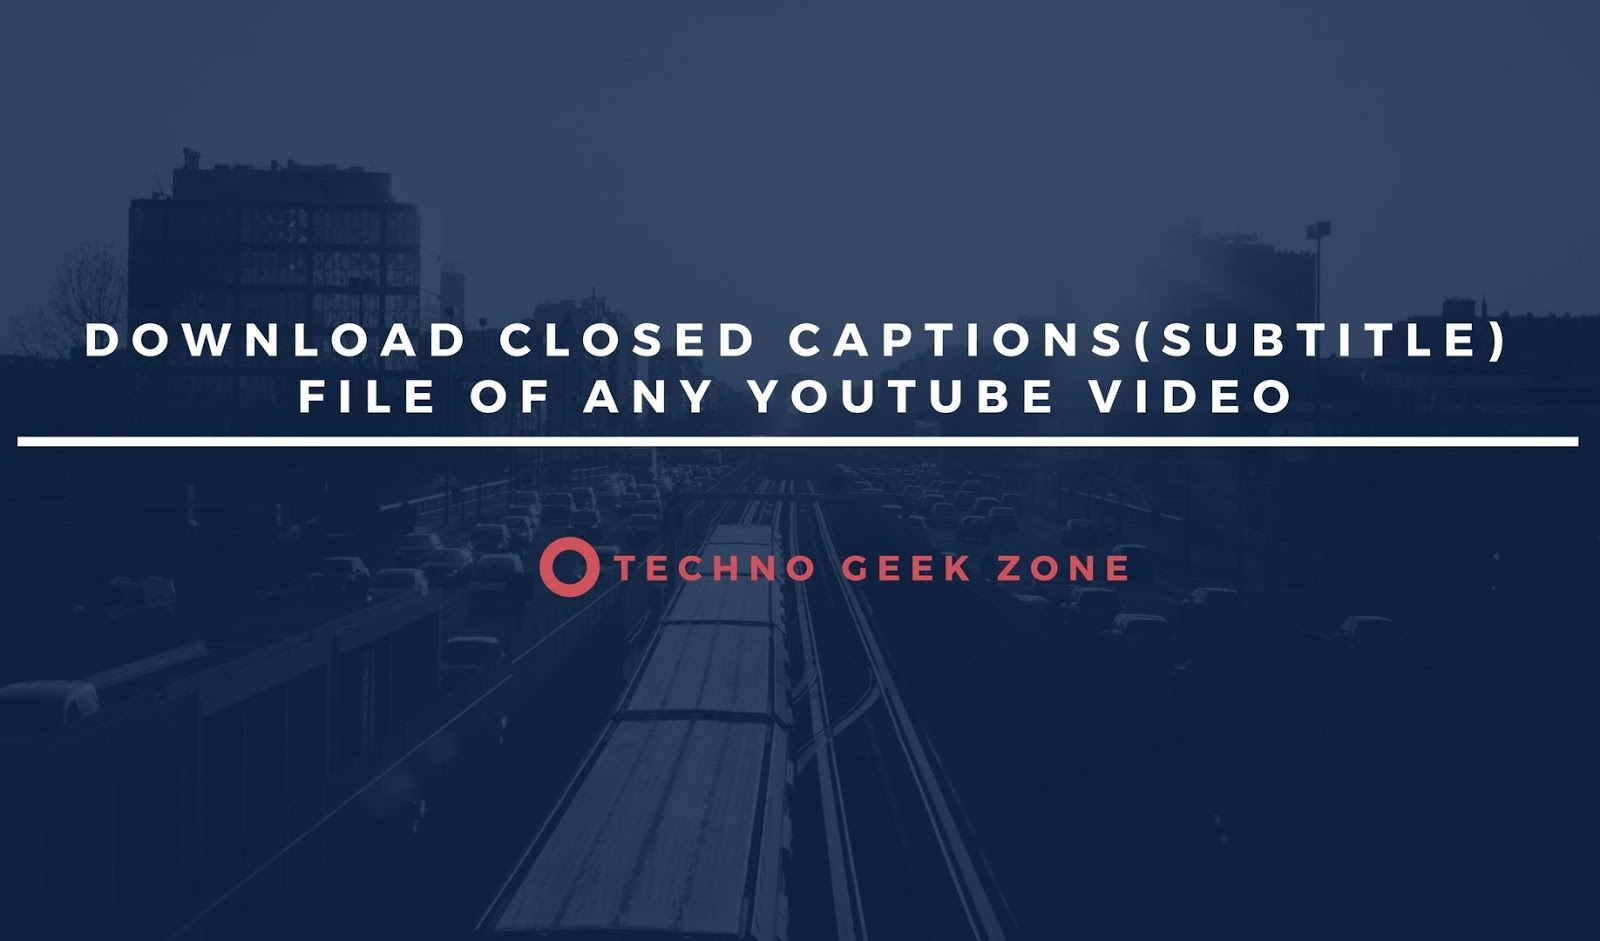 How to download closed captionssubtitle file of any youtube video welcome to techno geek zone today we are going to show you how you can download subtitles ie closed captions of any youtube video ccuart Images